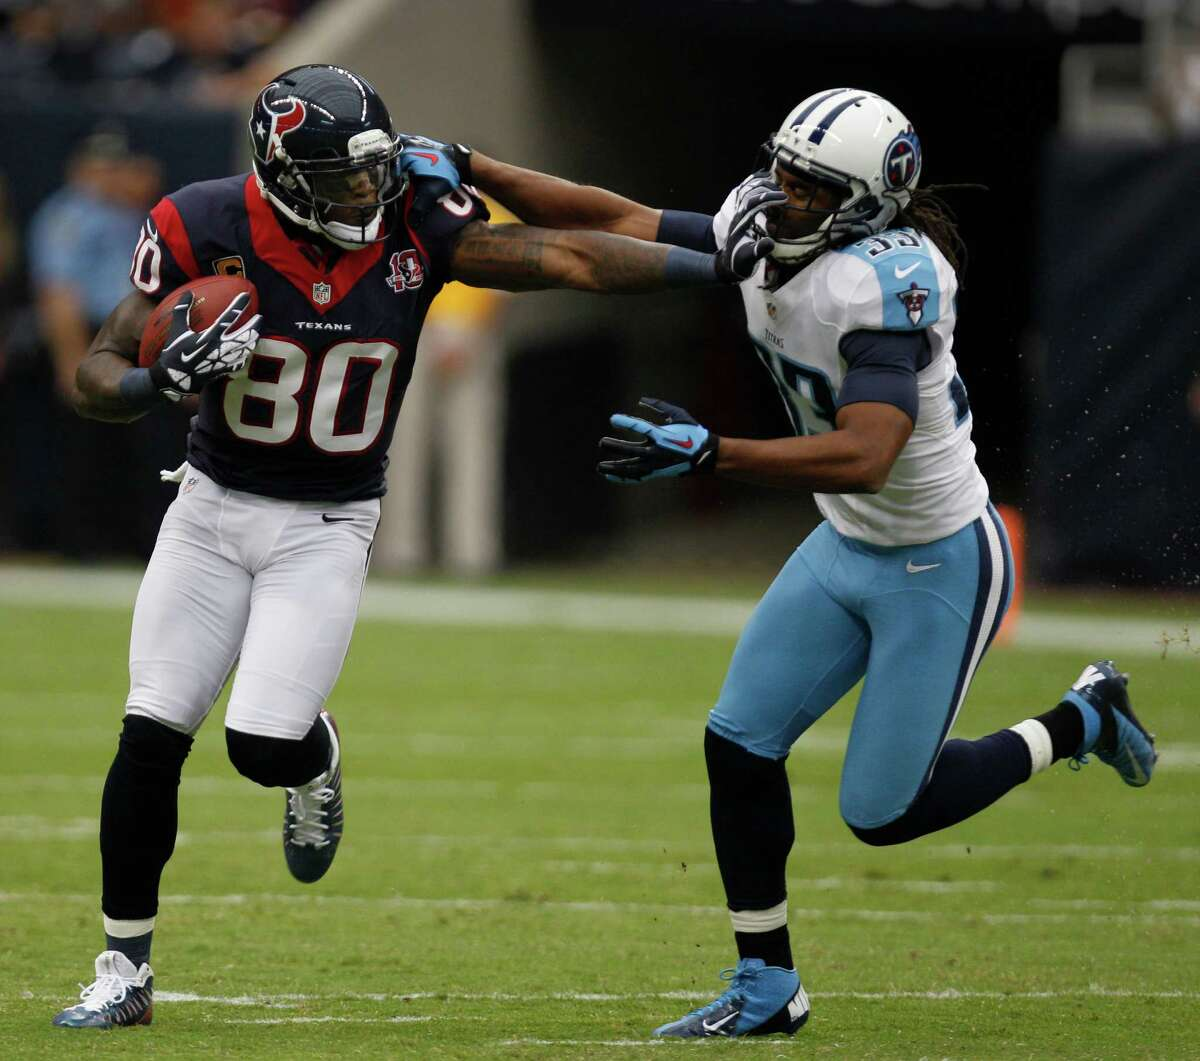 The combination of physical gifts and work ethic have allowed Texans receiver Andre Johnson, left, and Lions counterpart Calvin Johnson to separate themselves from most pass catchers in the NFL.